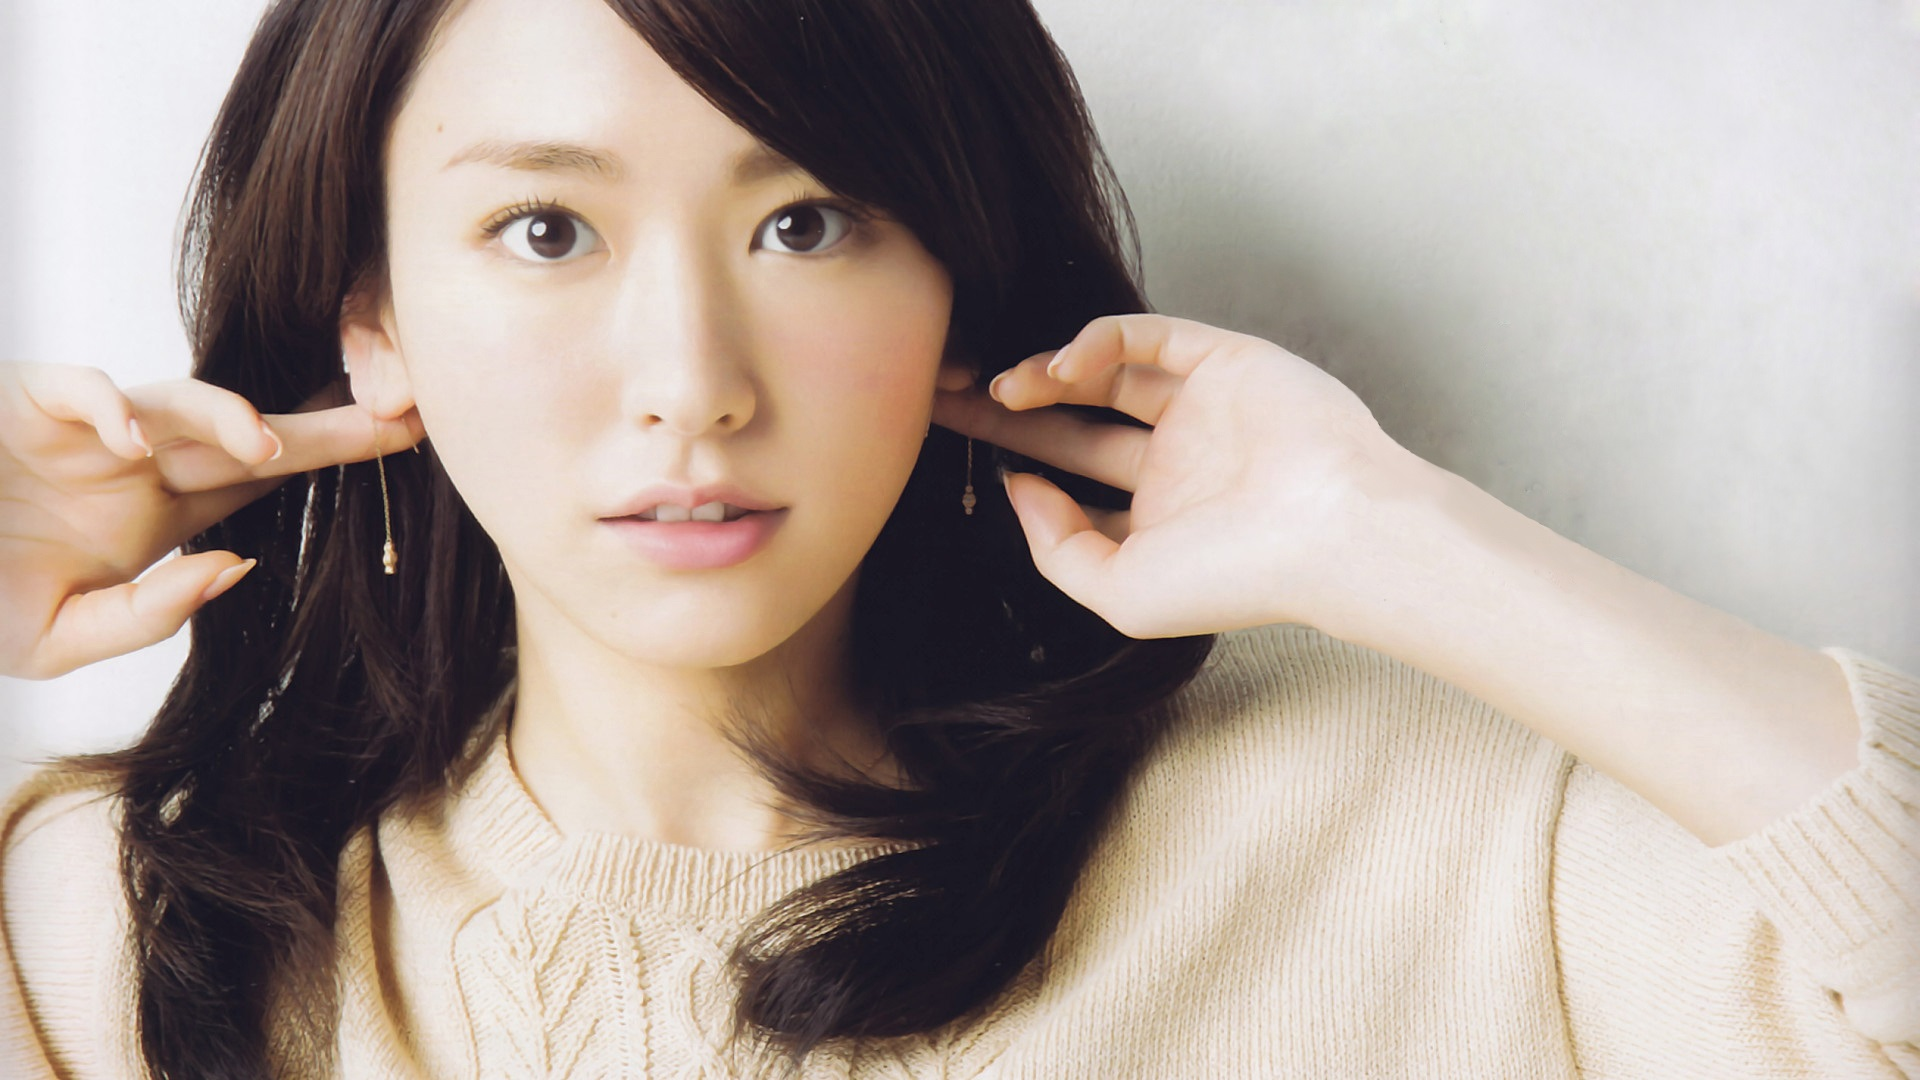 Aragaki Yui 08 640x960 Iphone 4 4s Wallpaper Background Picture Image